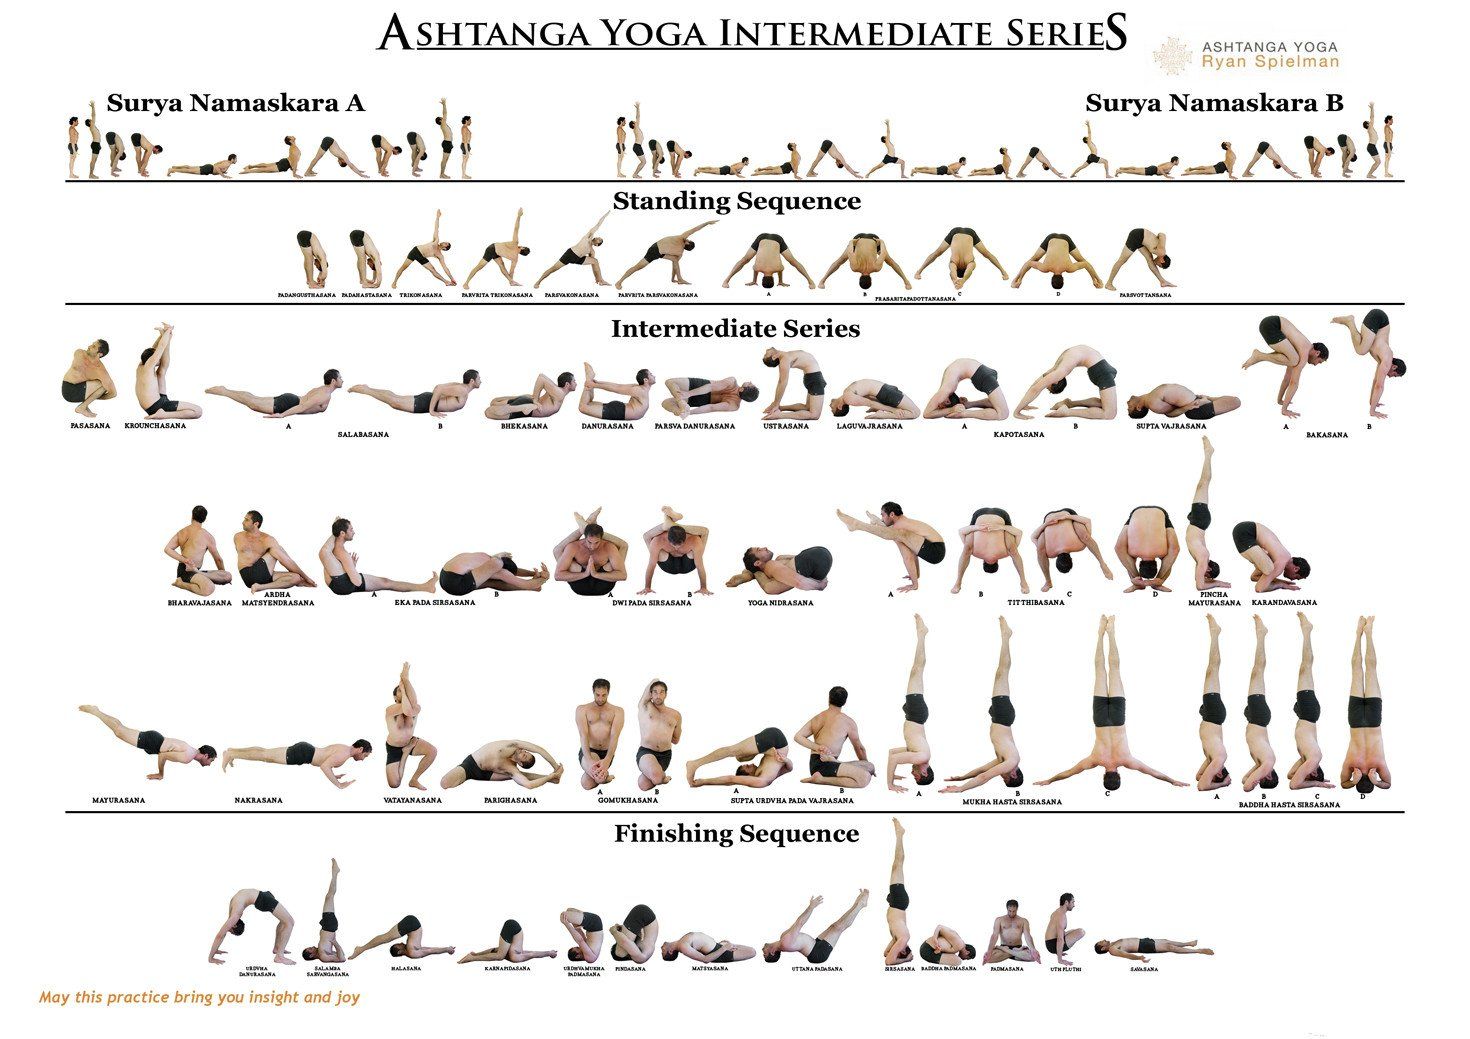 NewBrightBase Yoga Ashtanga Fabric Cloth Rolled Wall Poster Print - Size: (32